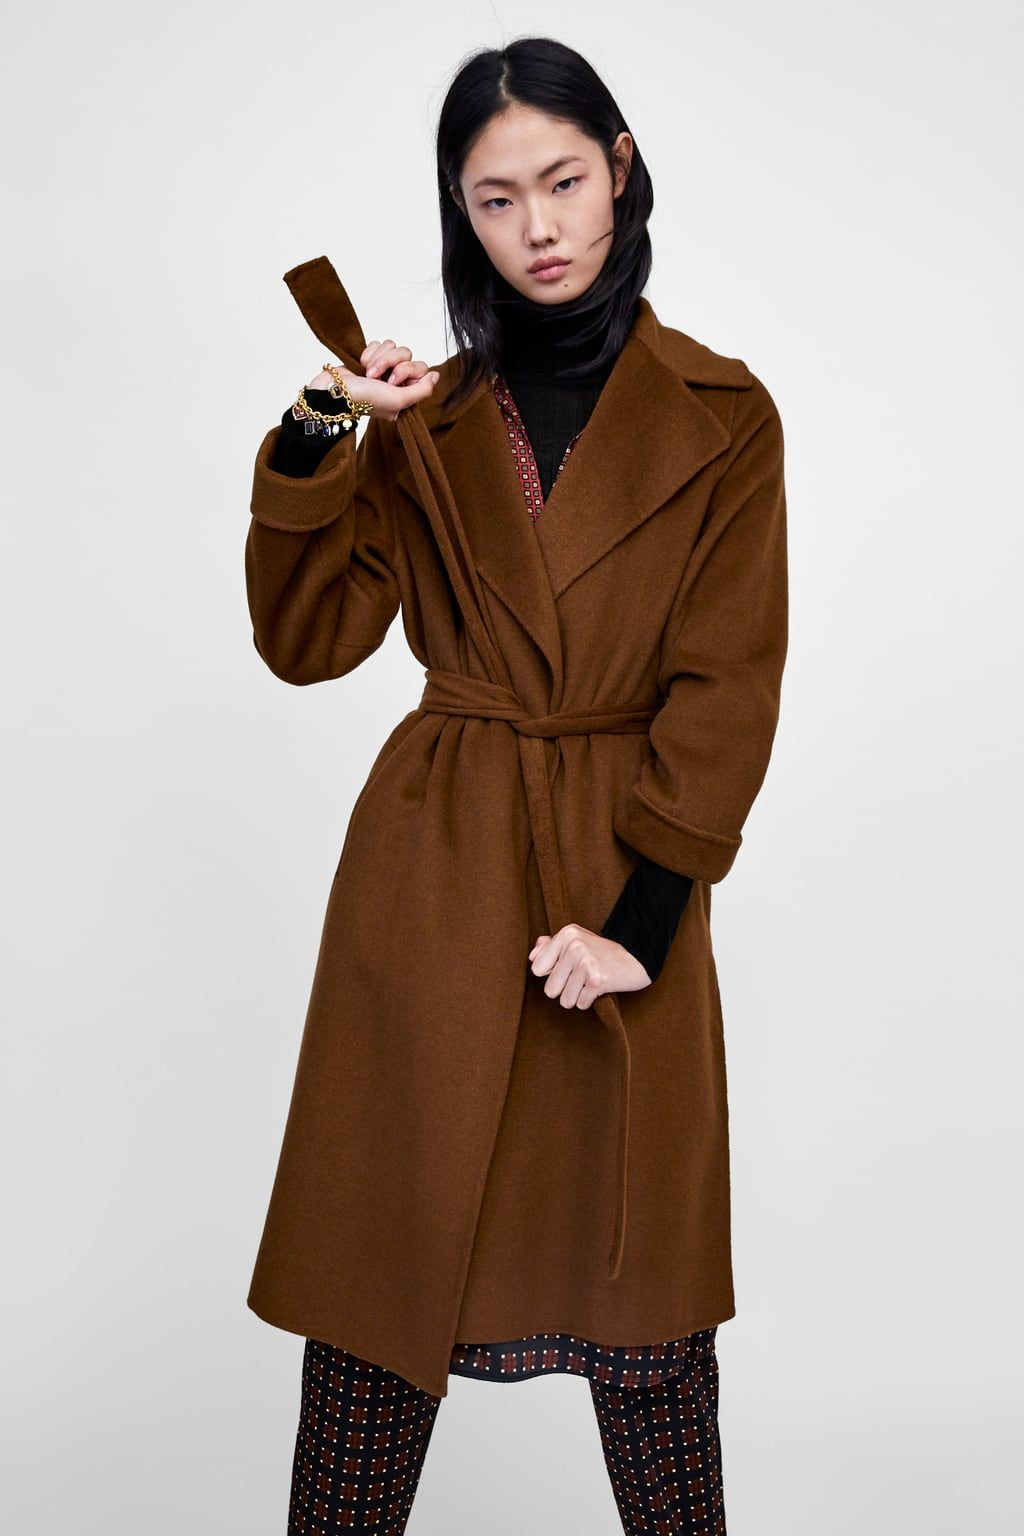 Le Meilleur Image 2 Of Long Coat From Zara The Work Edit Office Ce Mois Ci